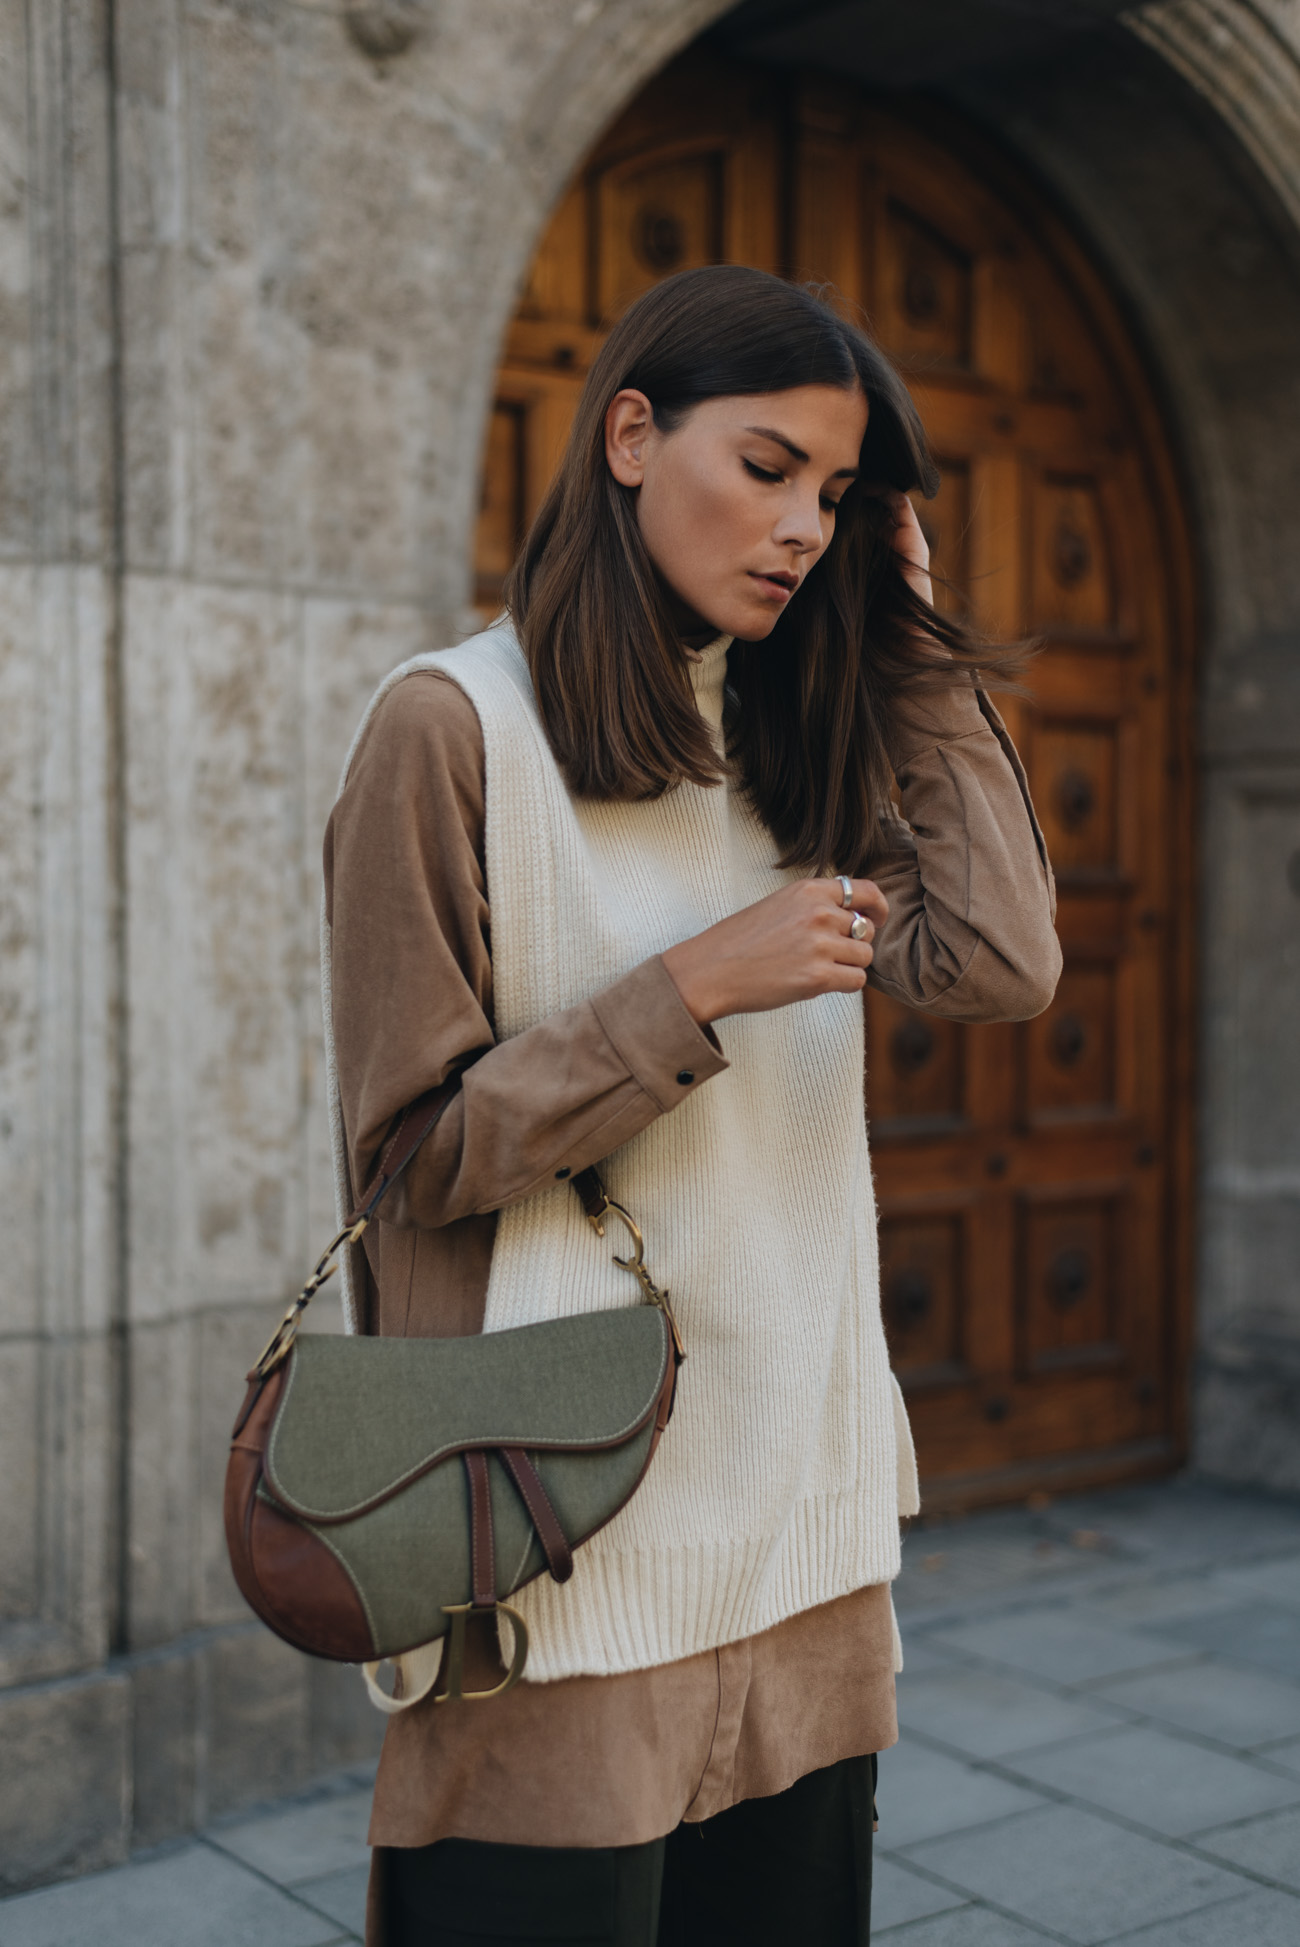 mode-trends-herbst-und-winter-2017-dior-saddle-bag-layering-fashion-blogger-deutschland-nina-schwichtenberg